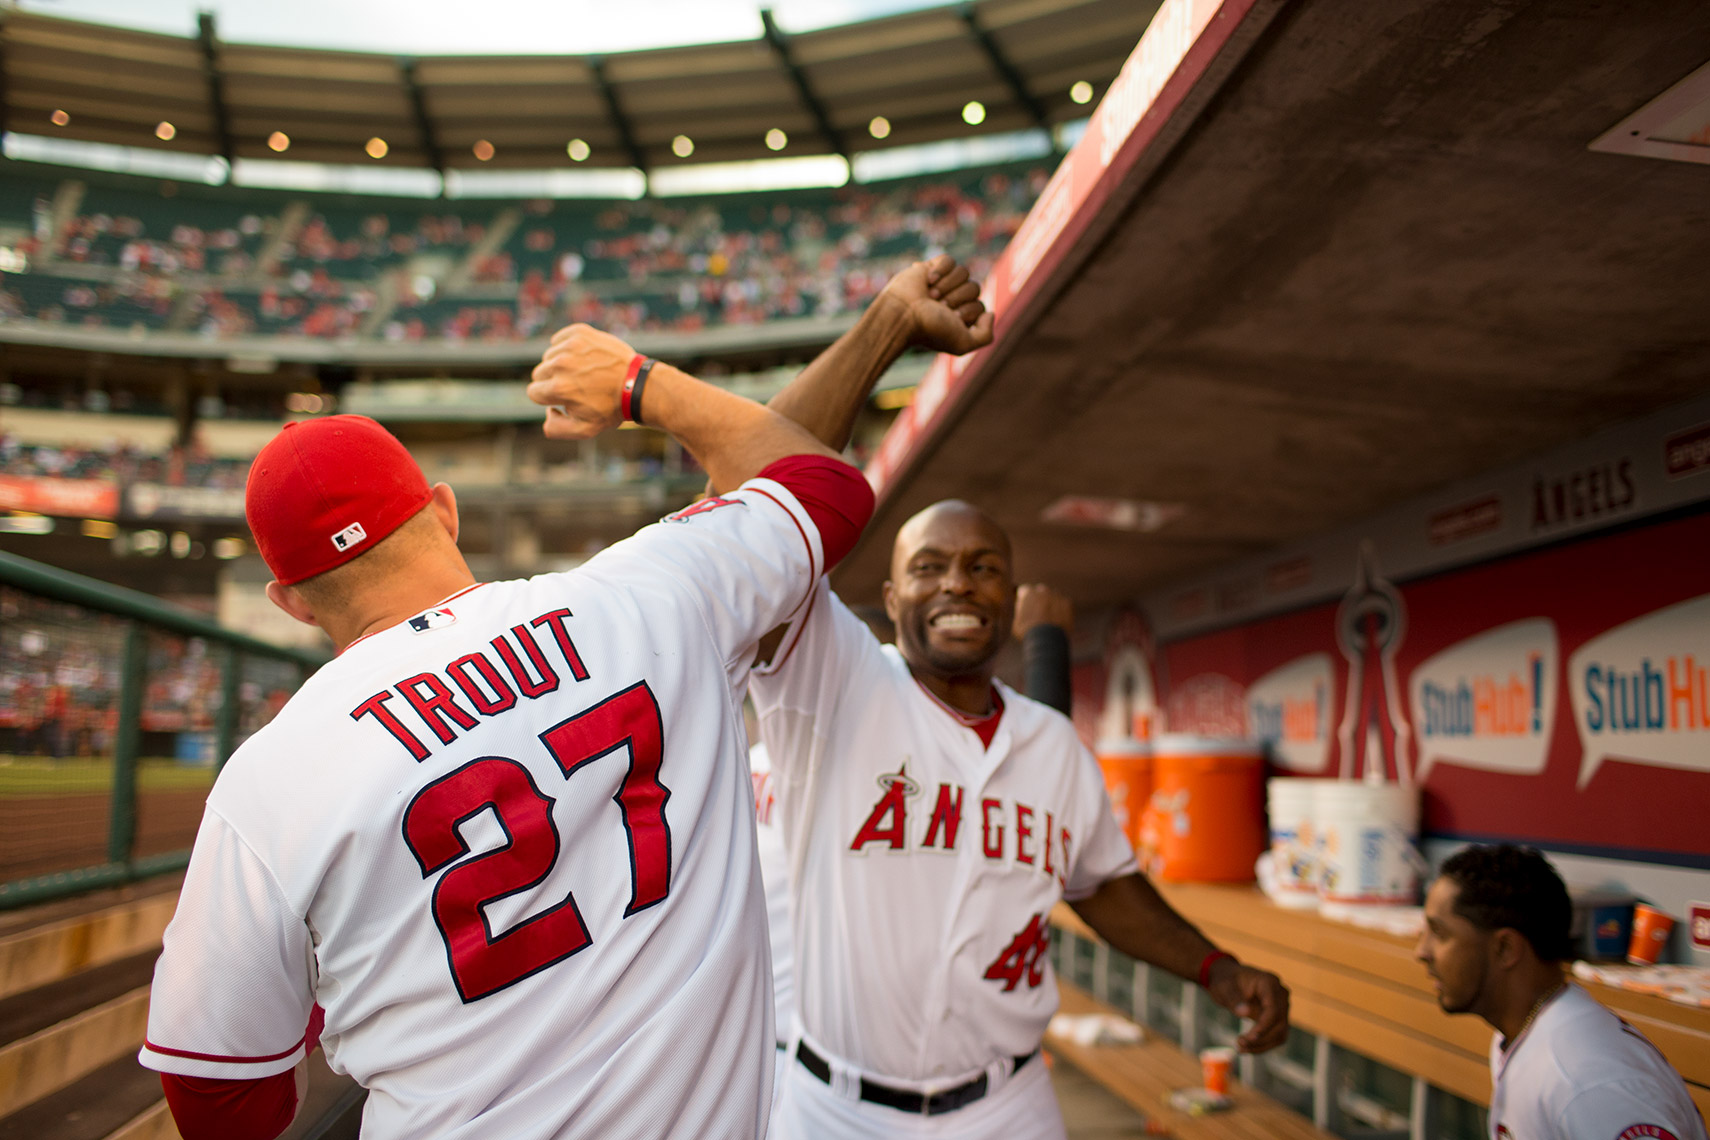 20120815_mike-trout-1885-web